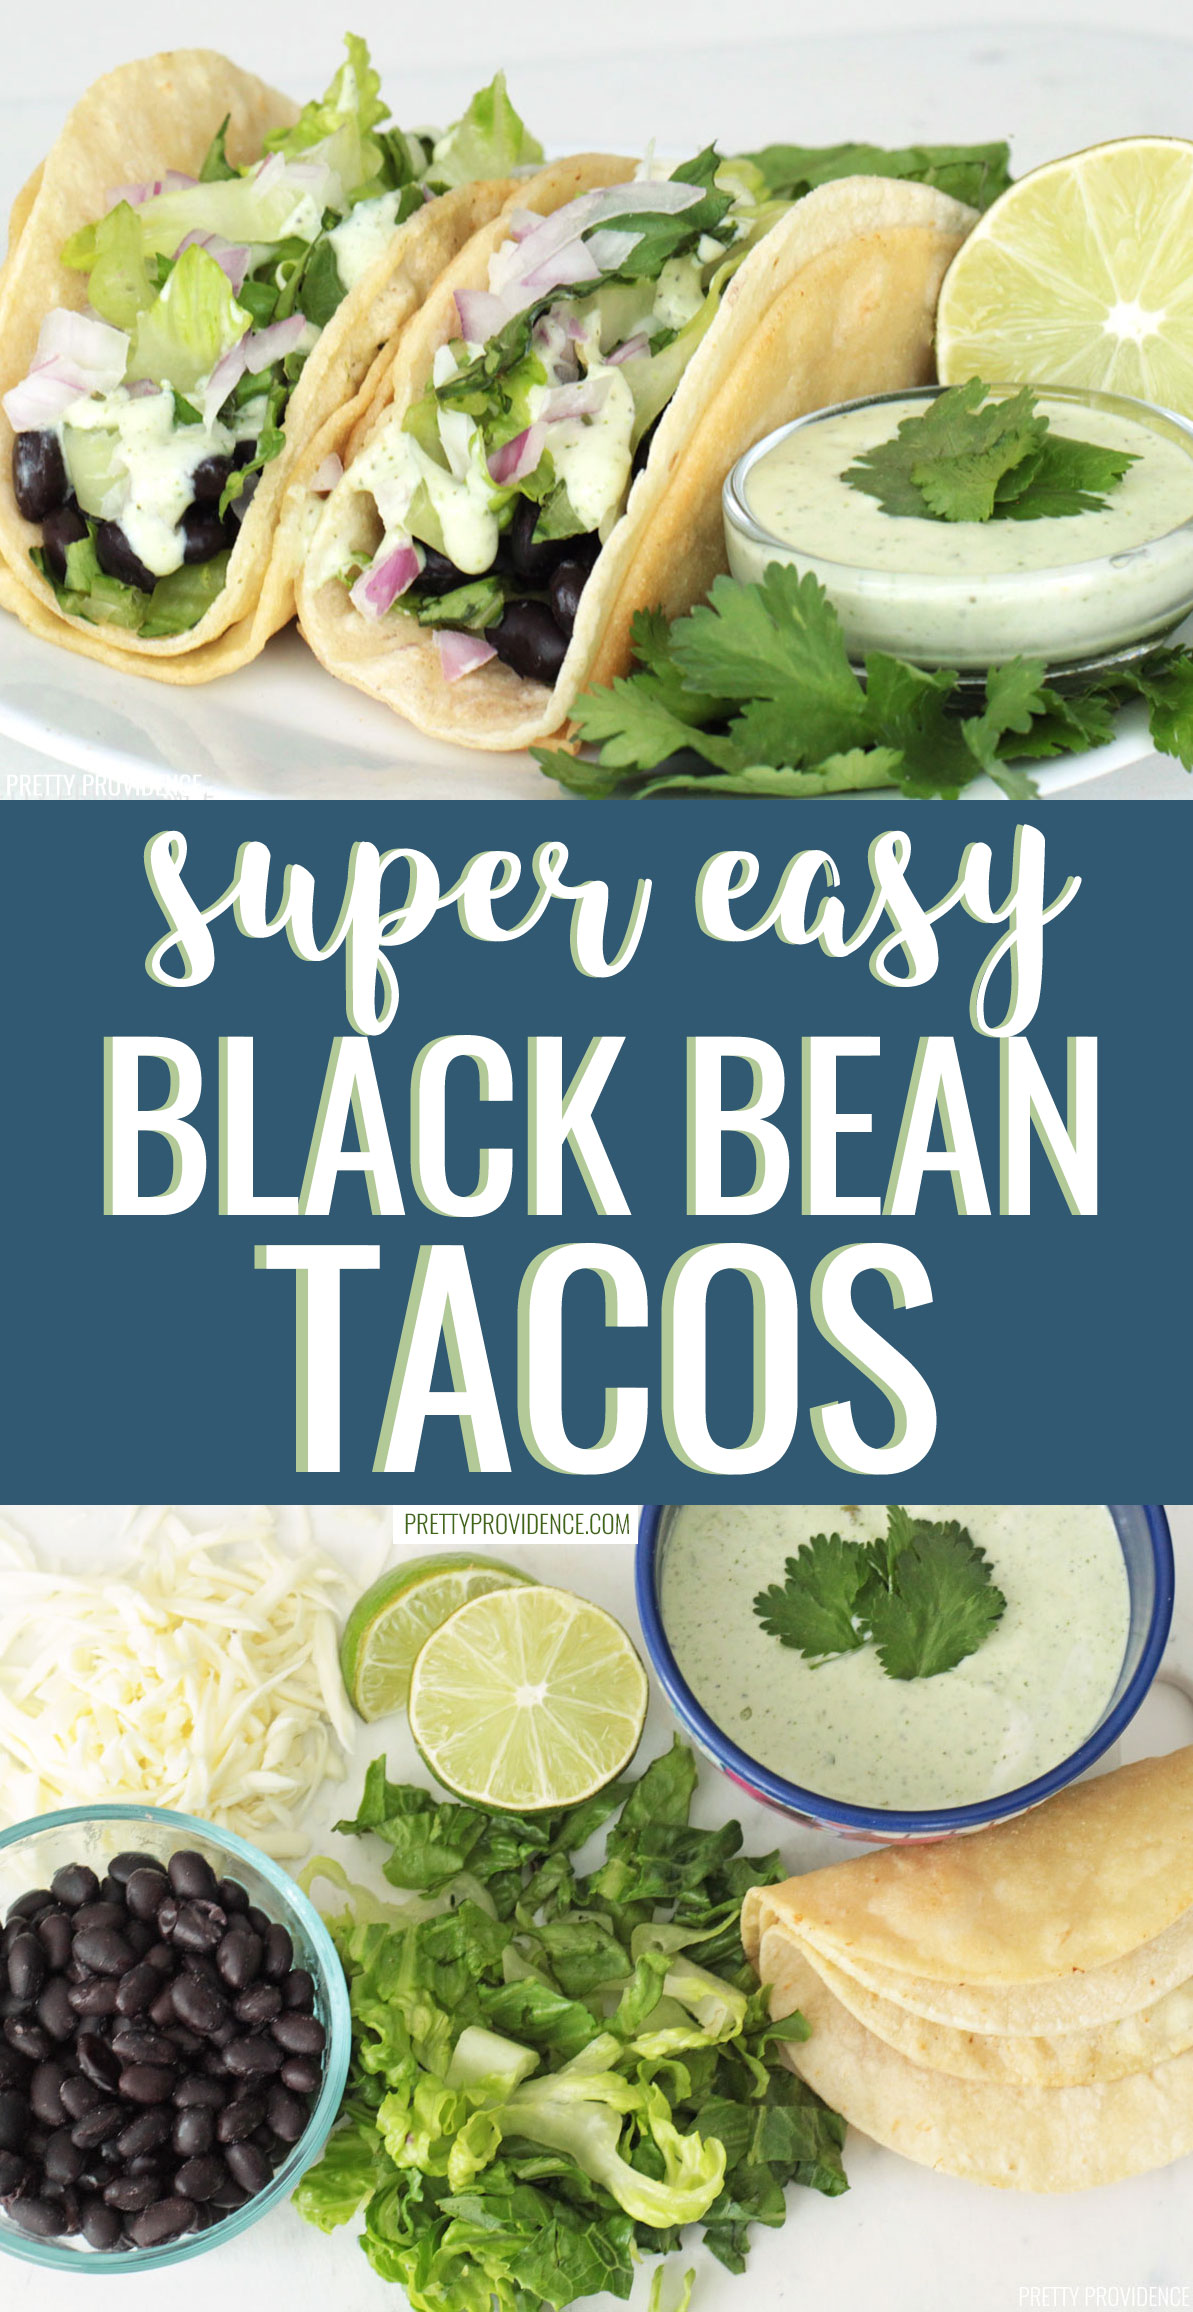 Healthy black bean tacos recipe that taste absolutely amazing! The spicy ranch gives them tons of flavor. Only 215 calories each!